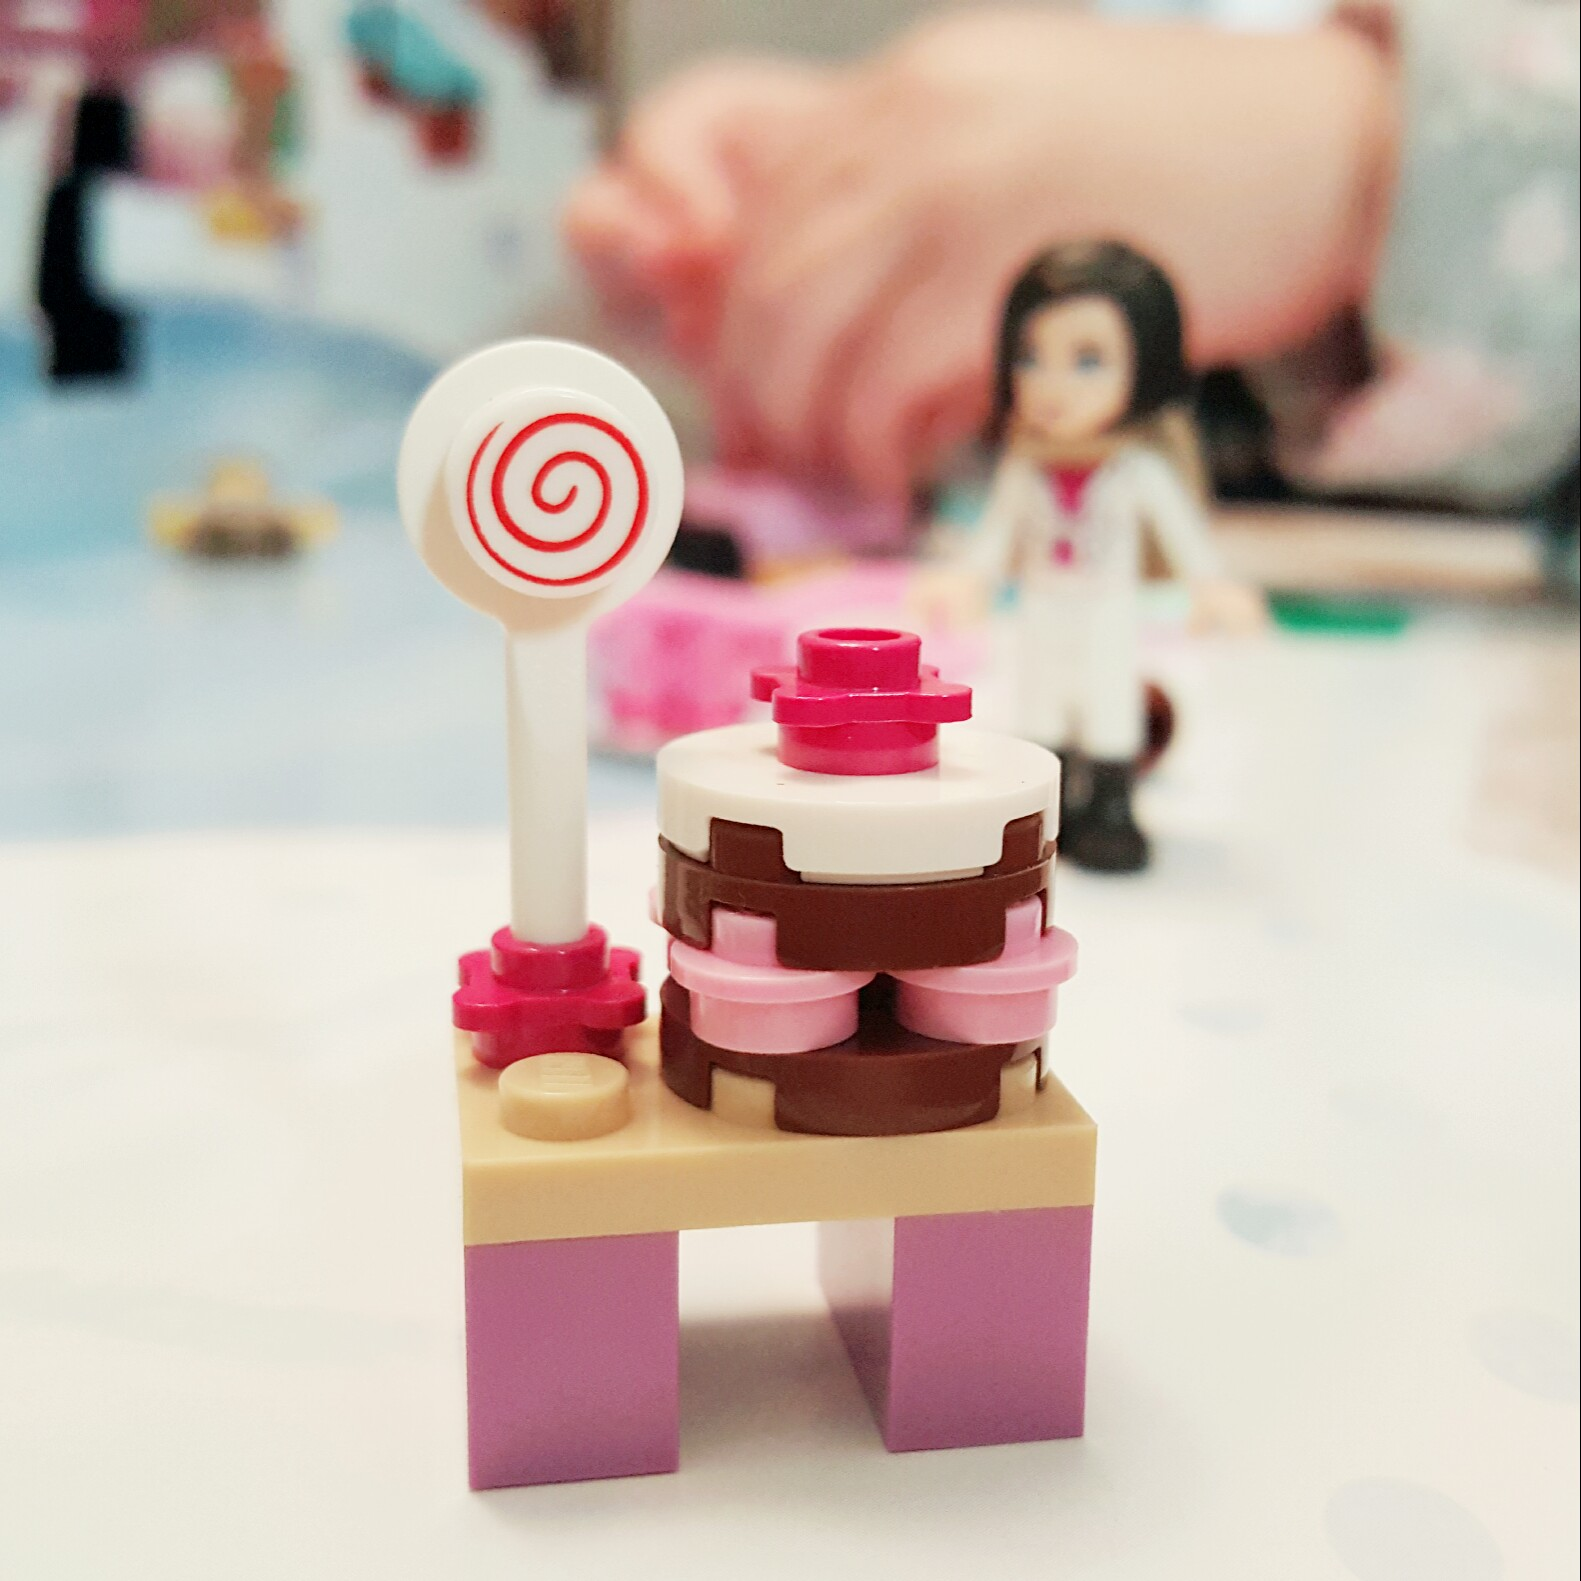 """""""Sweets!"""" - Day 16 Cake and Lollipop Stand from LEGO Friends Advent Calendar"""